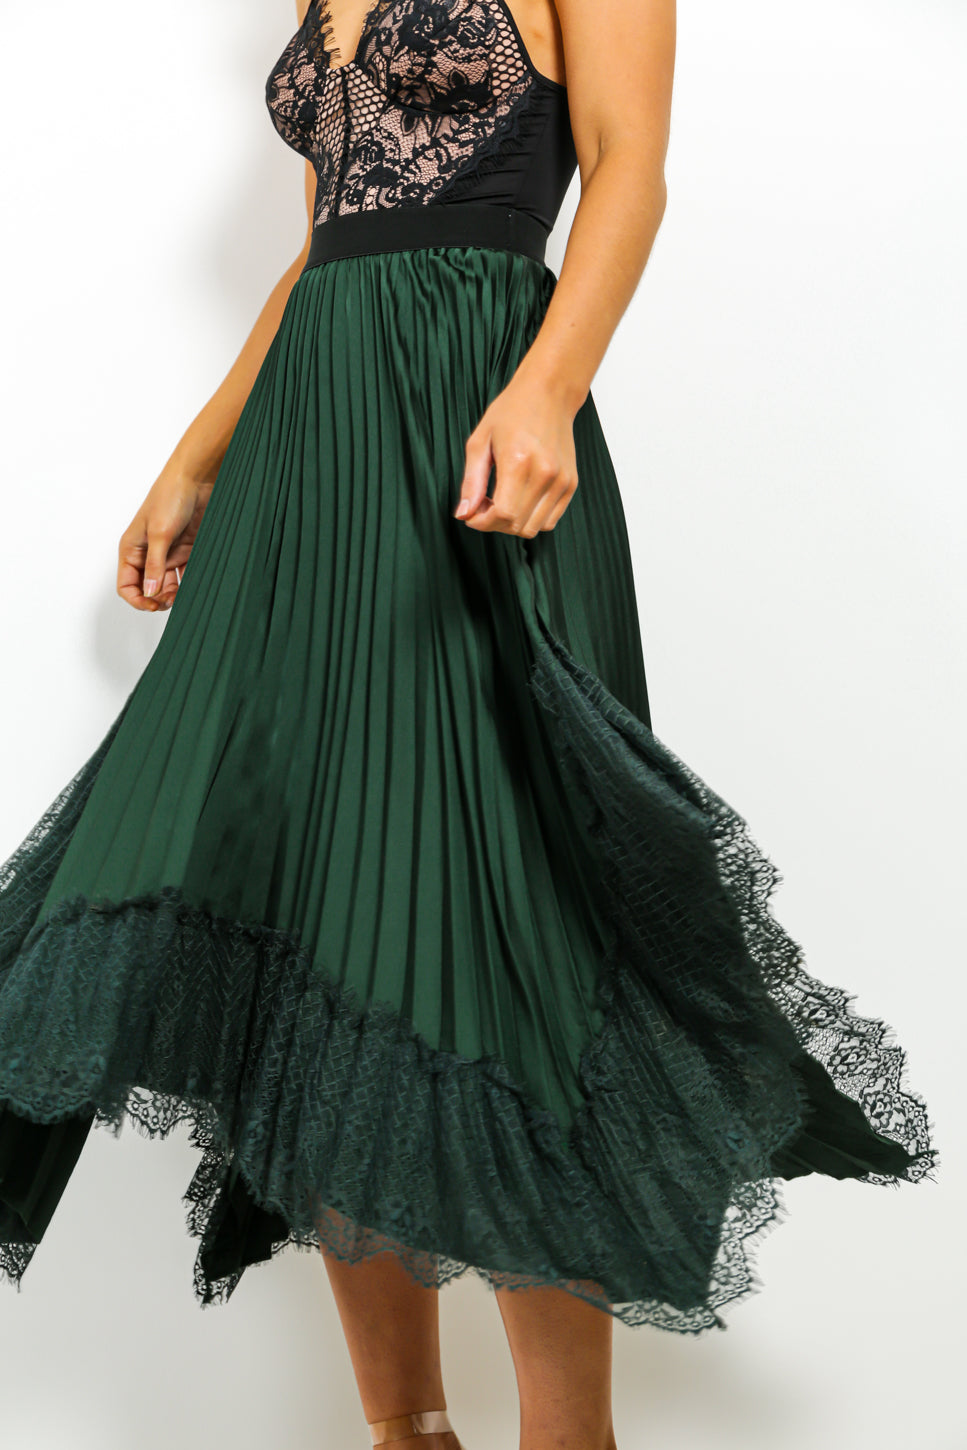 In The Pleat Of The Moment - Skirt In FOREST